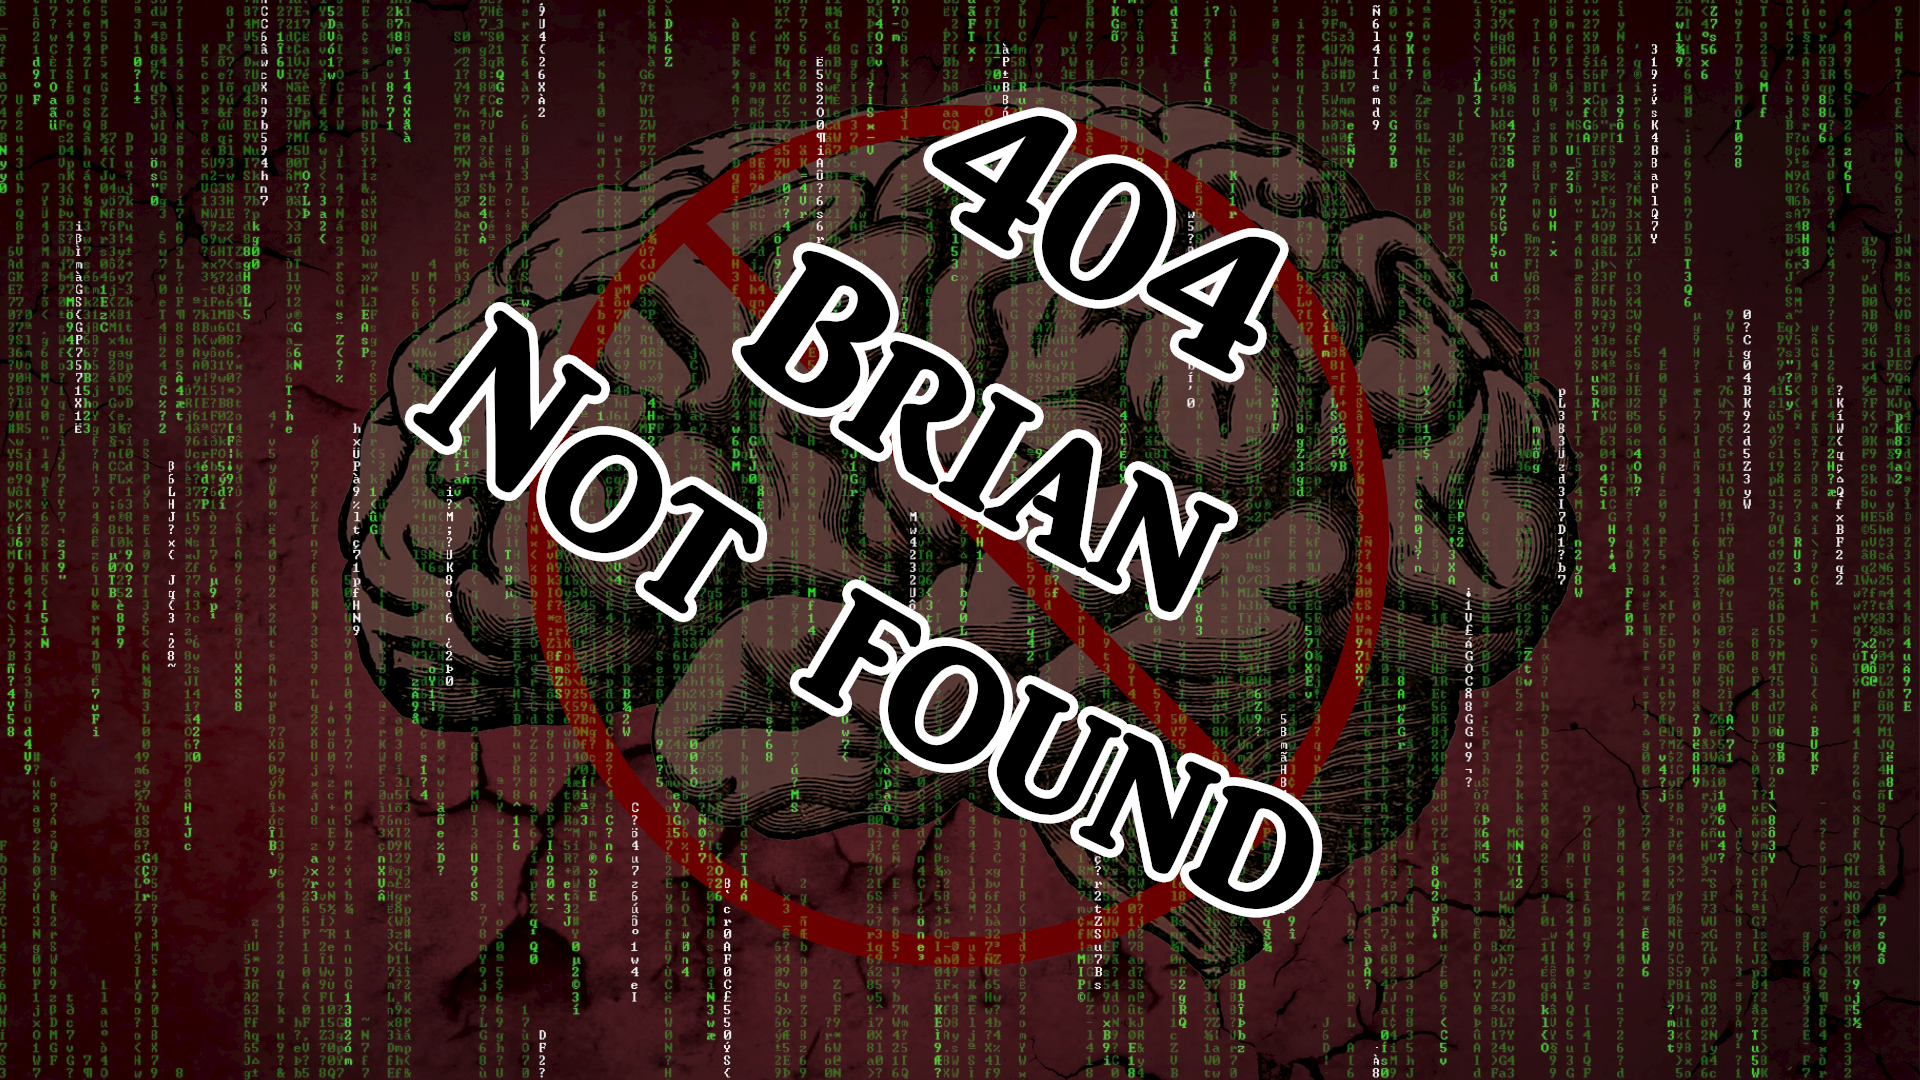 """Fun fact: while attempting to misspell the word brain, I accidentally misspelled the misspelling, resulting in an original filename of """"Brina not found"""""""